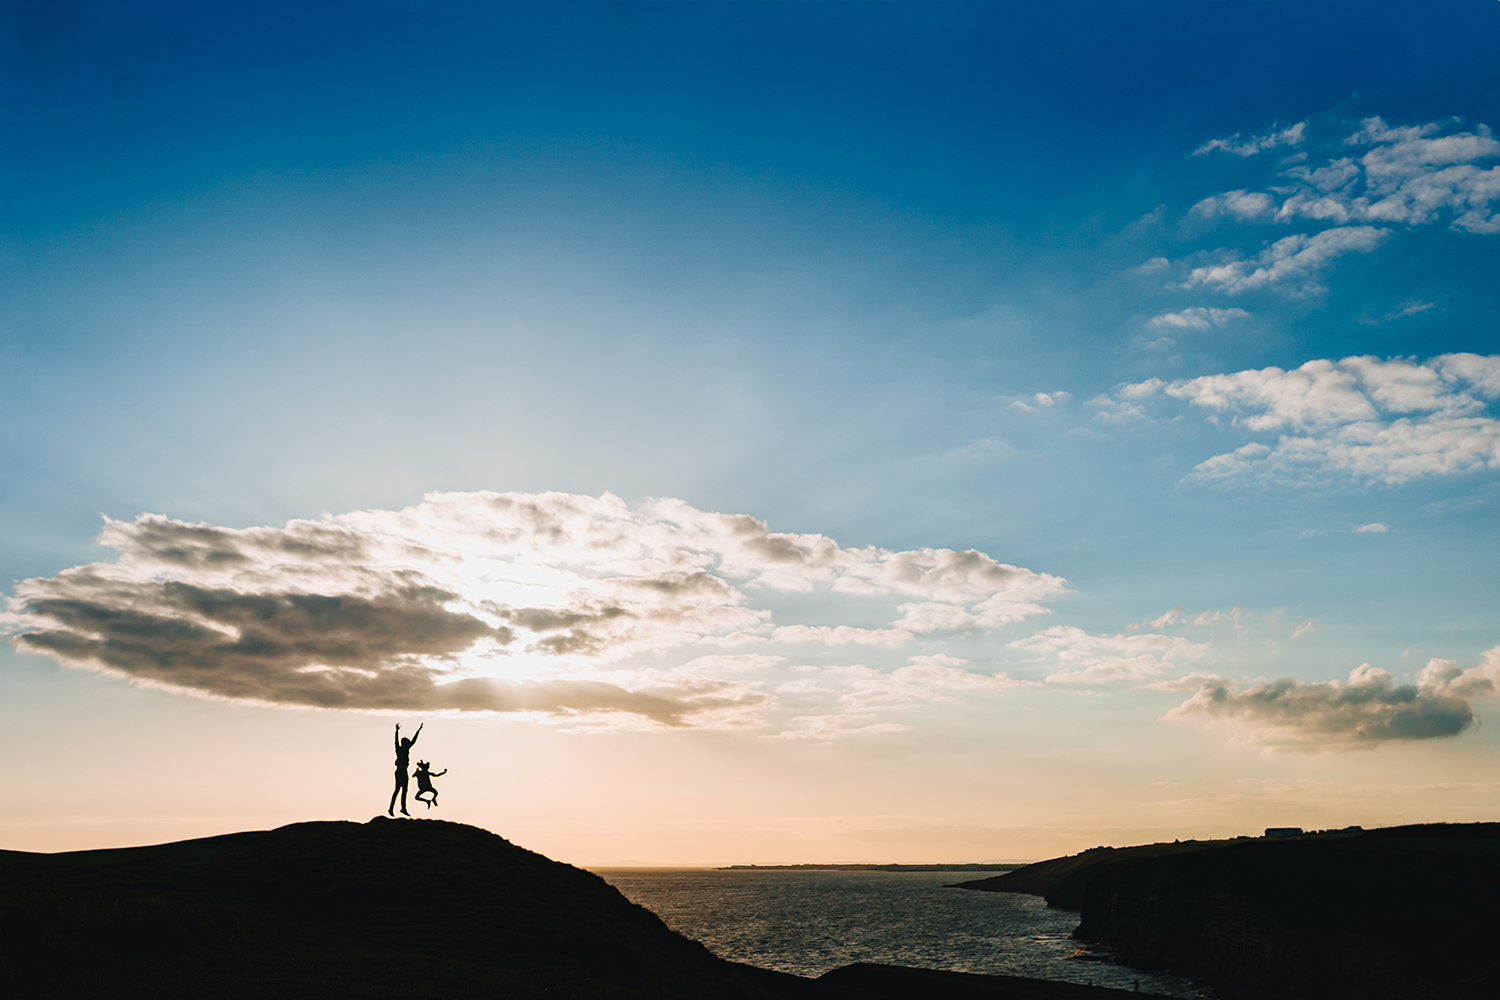 silhouette image of children jumping on a cliff top